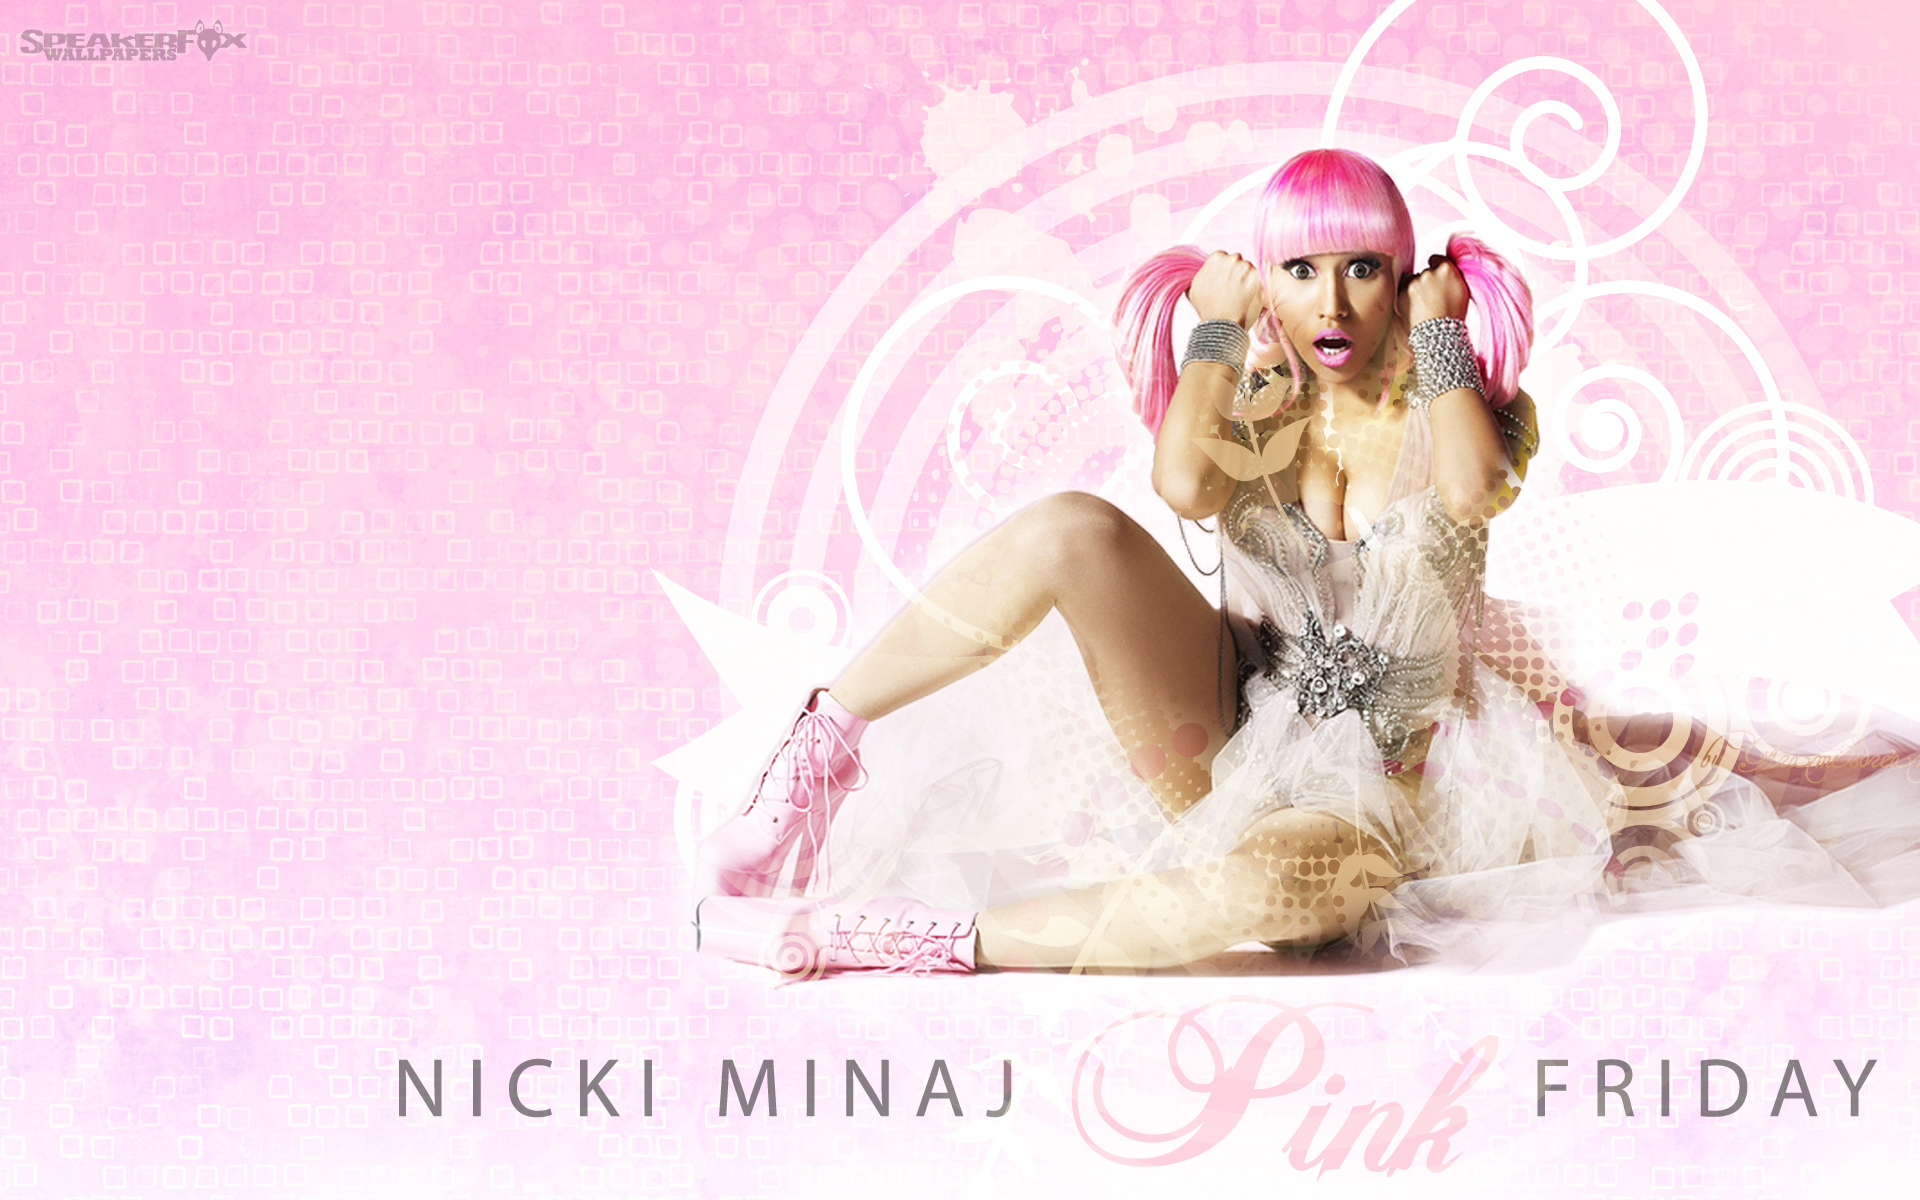 Nicki Minaj Pink Friday wallpapers HD   544061 1920x1200